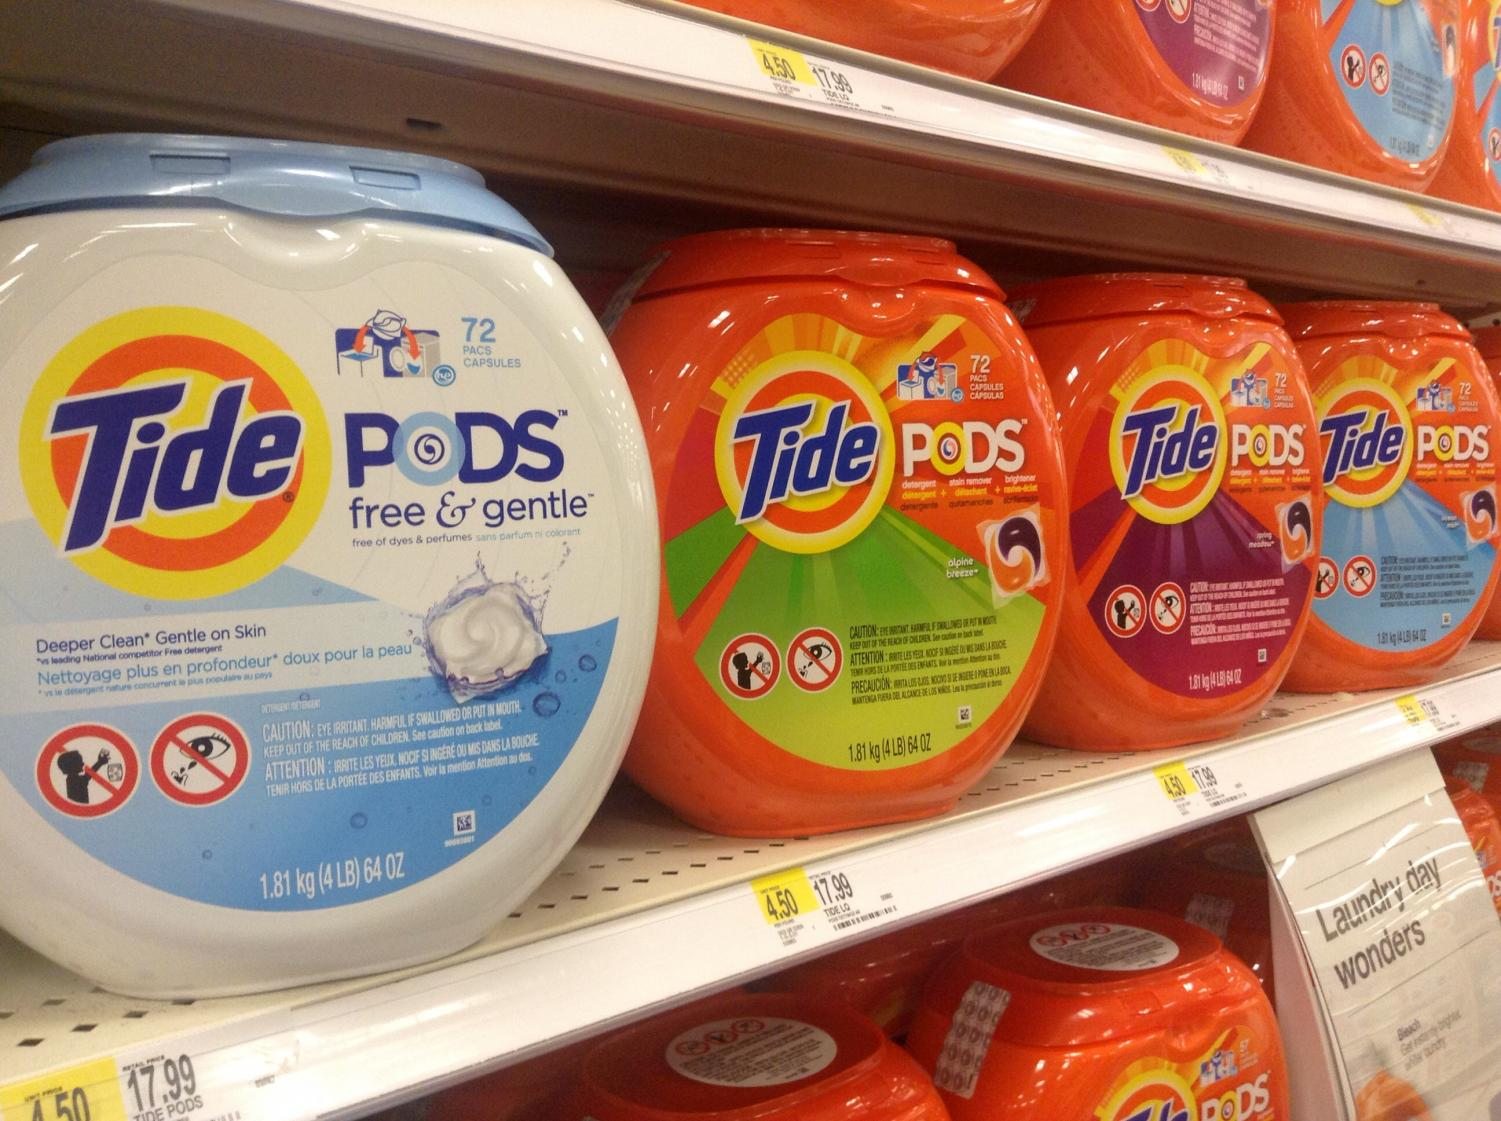 An internet joke regarding consumption of laundry detergent pods has taken a serious turn in the early days of the new year.